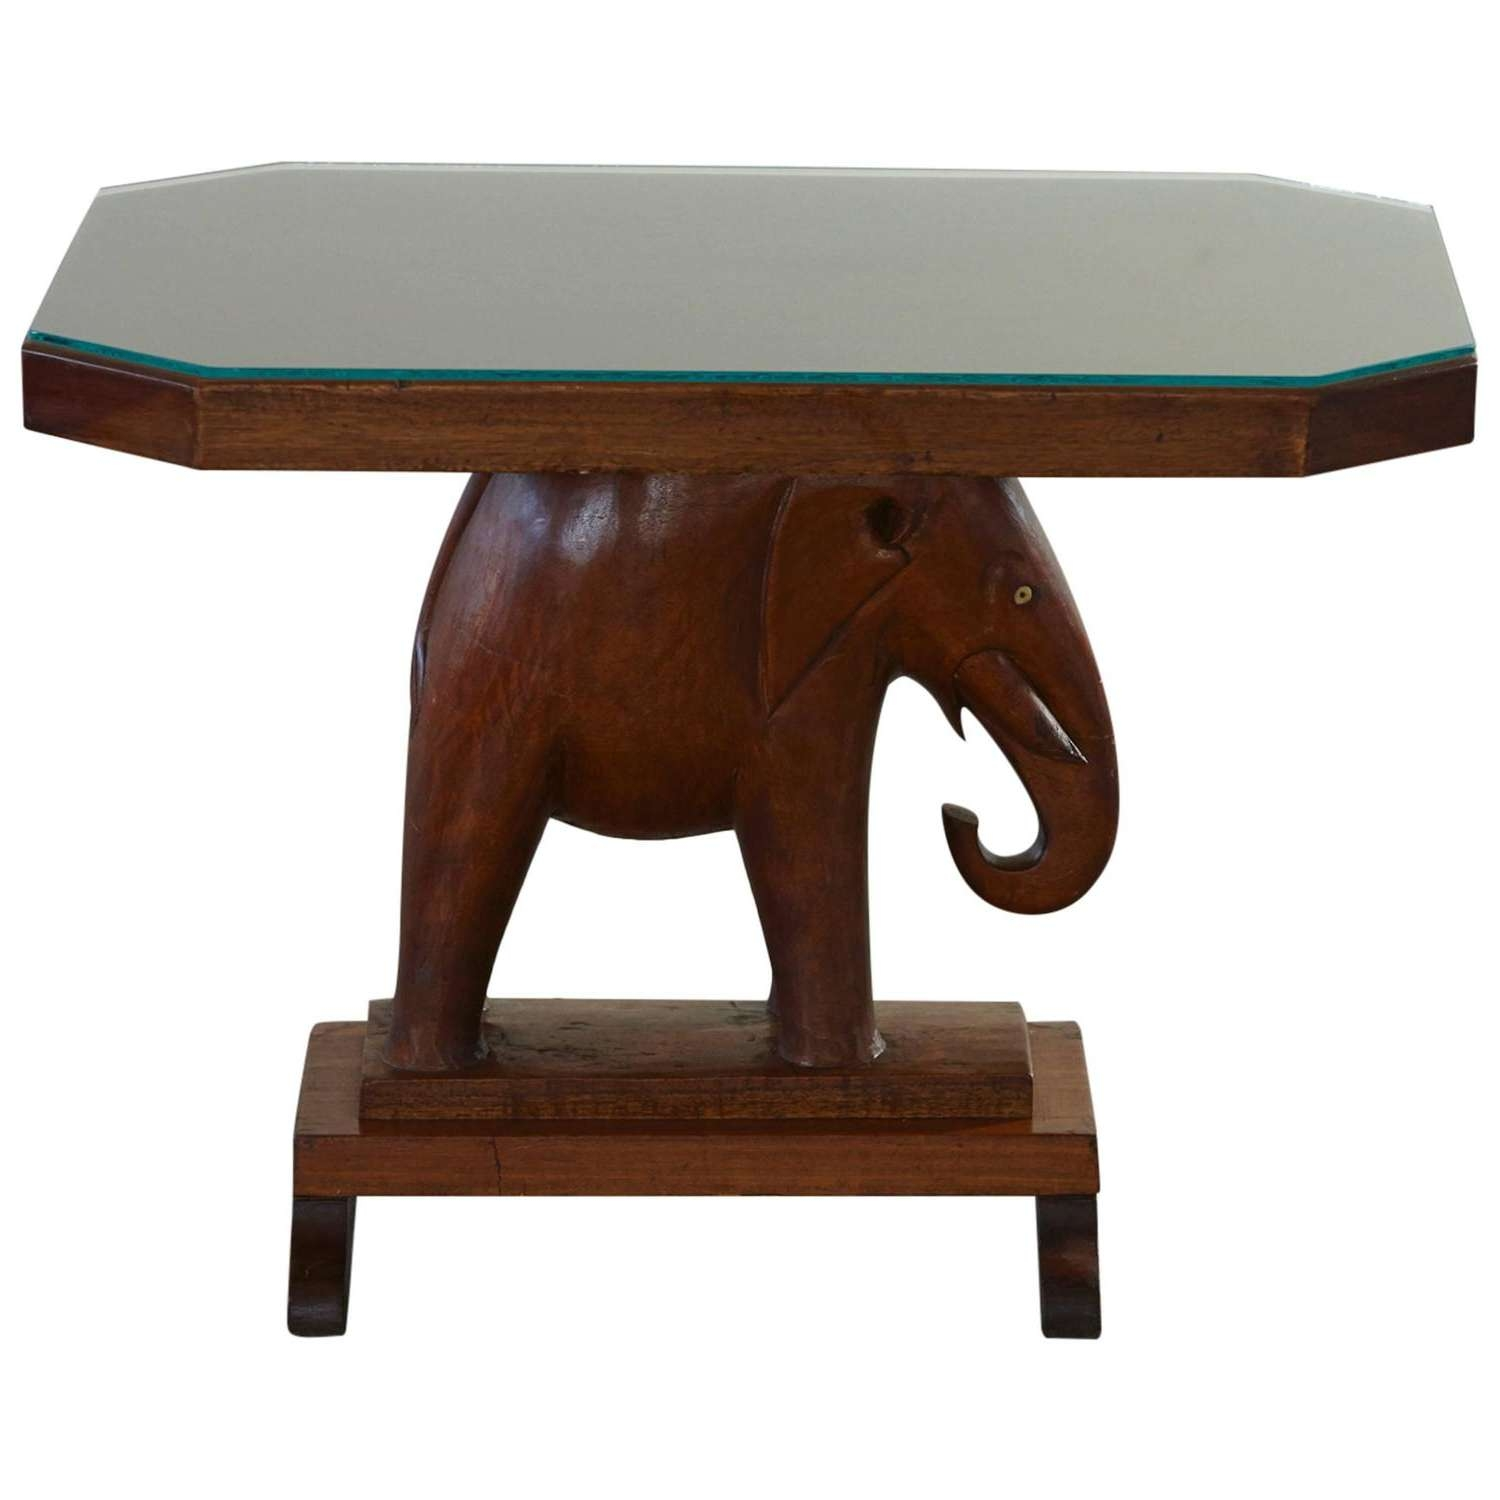 Rare Mahogany Table With Carved Elephant Base With Roosevelt Within Most Up To Date Elephant Coffee Tables (View 6 of 20)